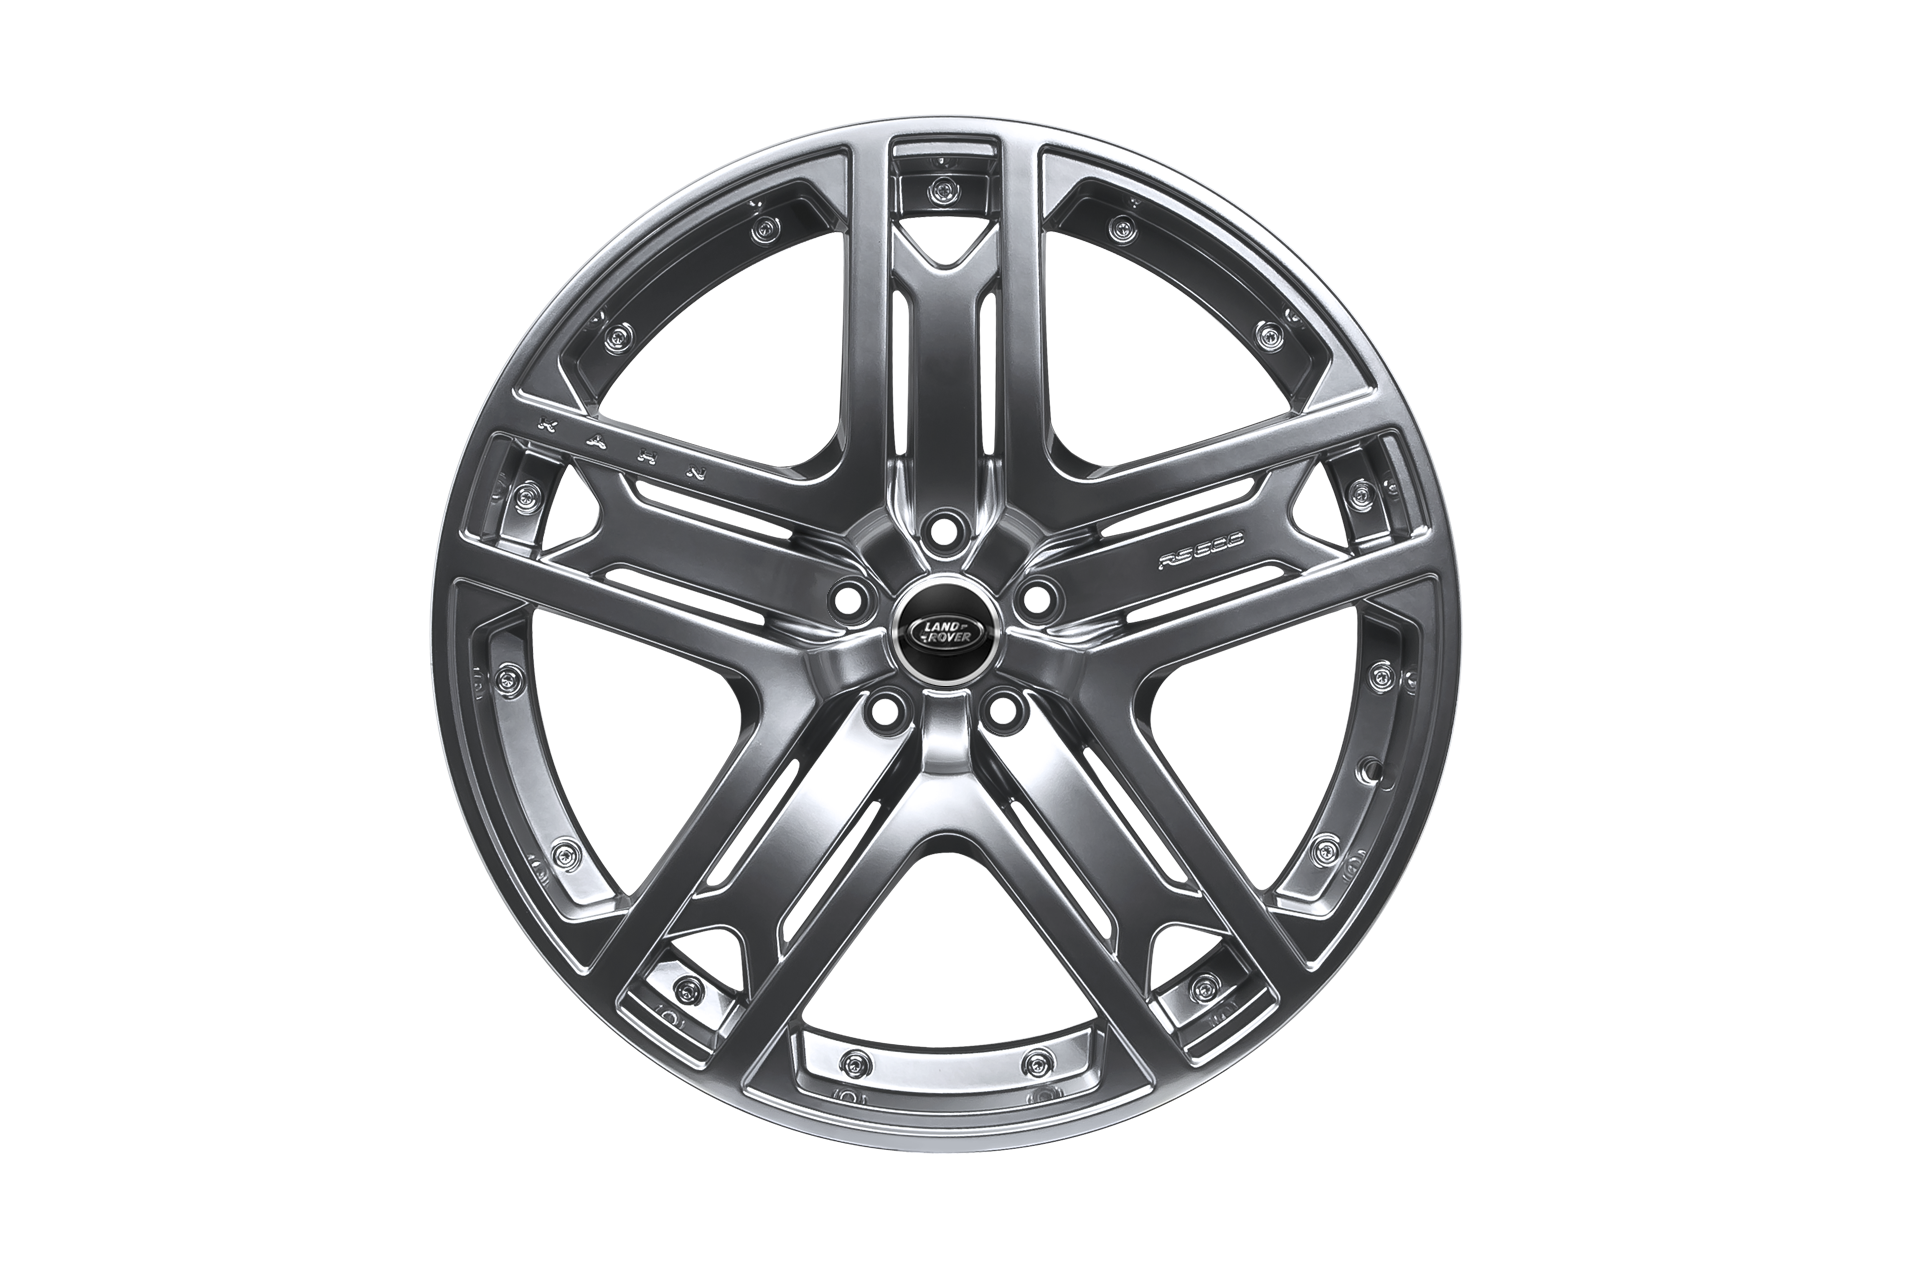 Land Rover Discovery (2004-2016) Rs600 Light Alloy Wheels by Kahn - Image 3881